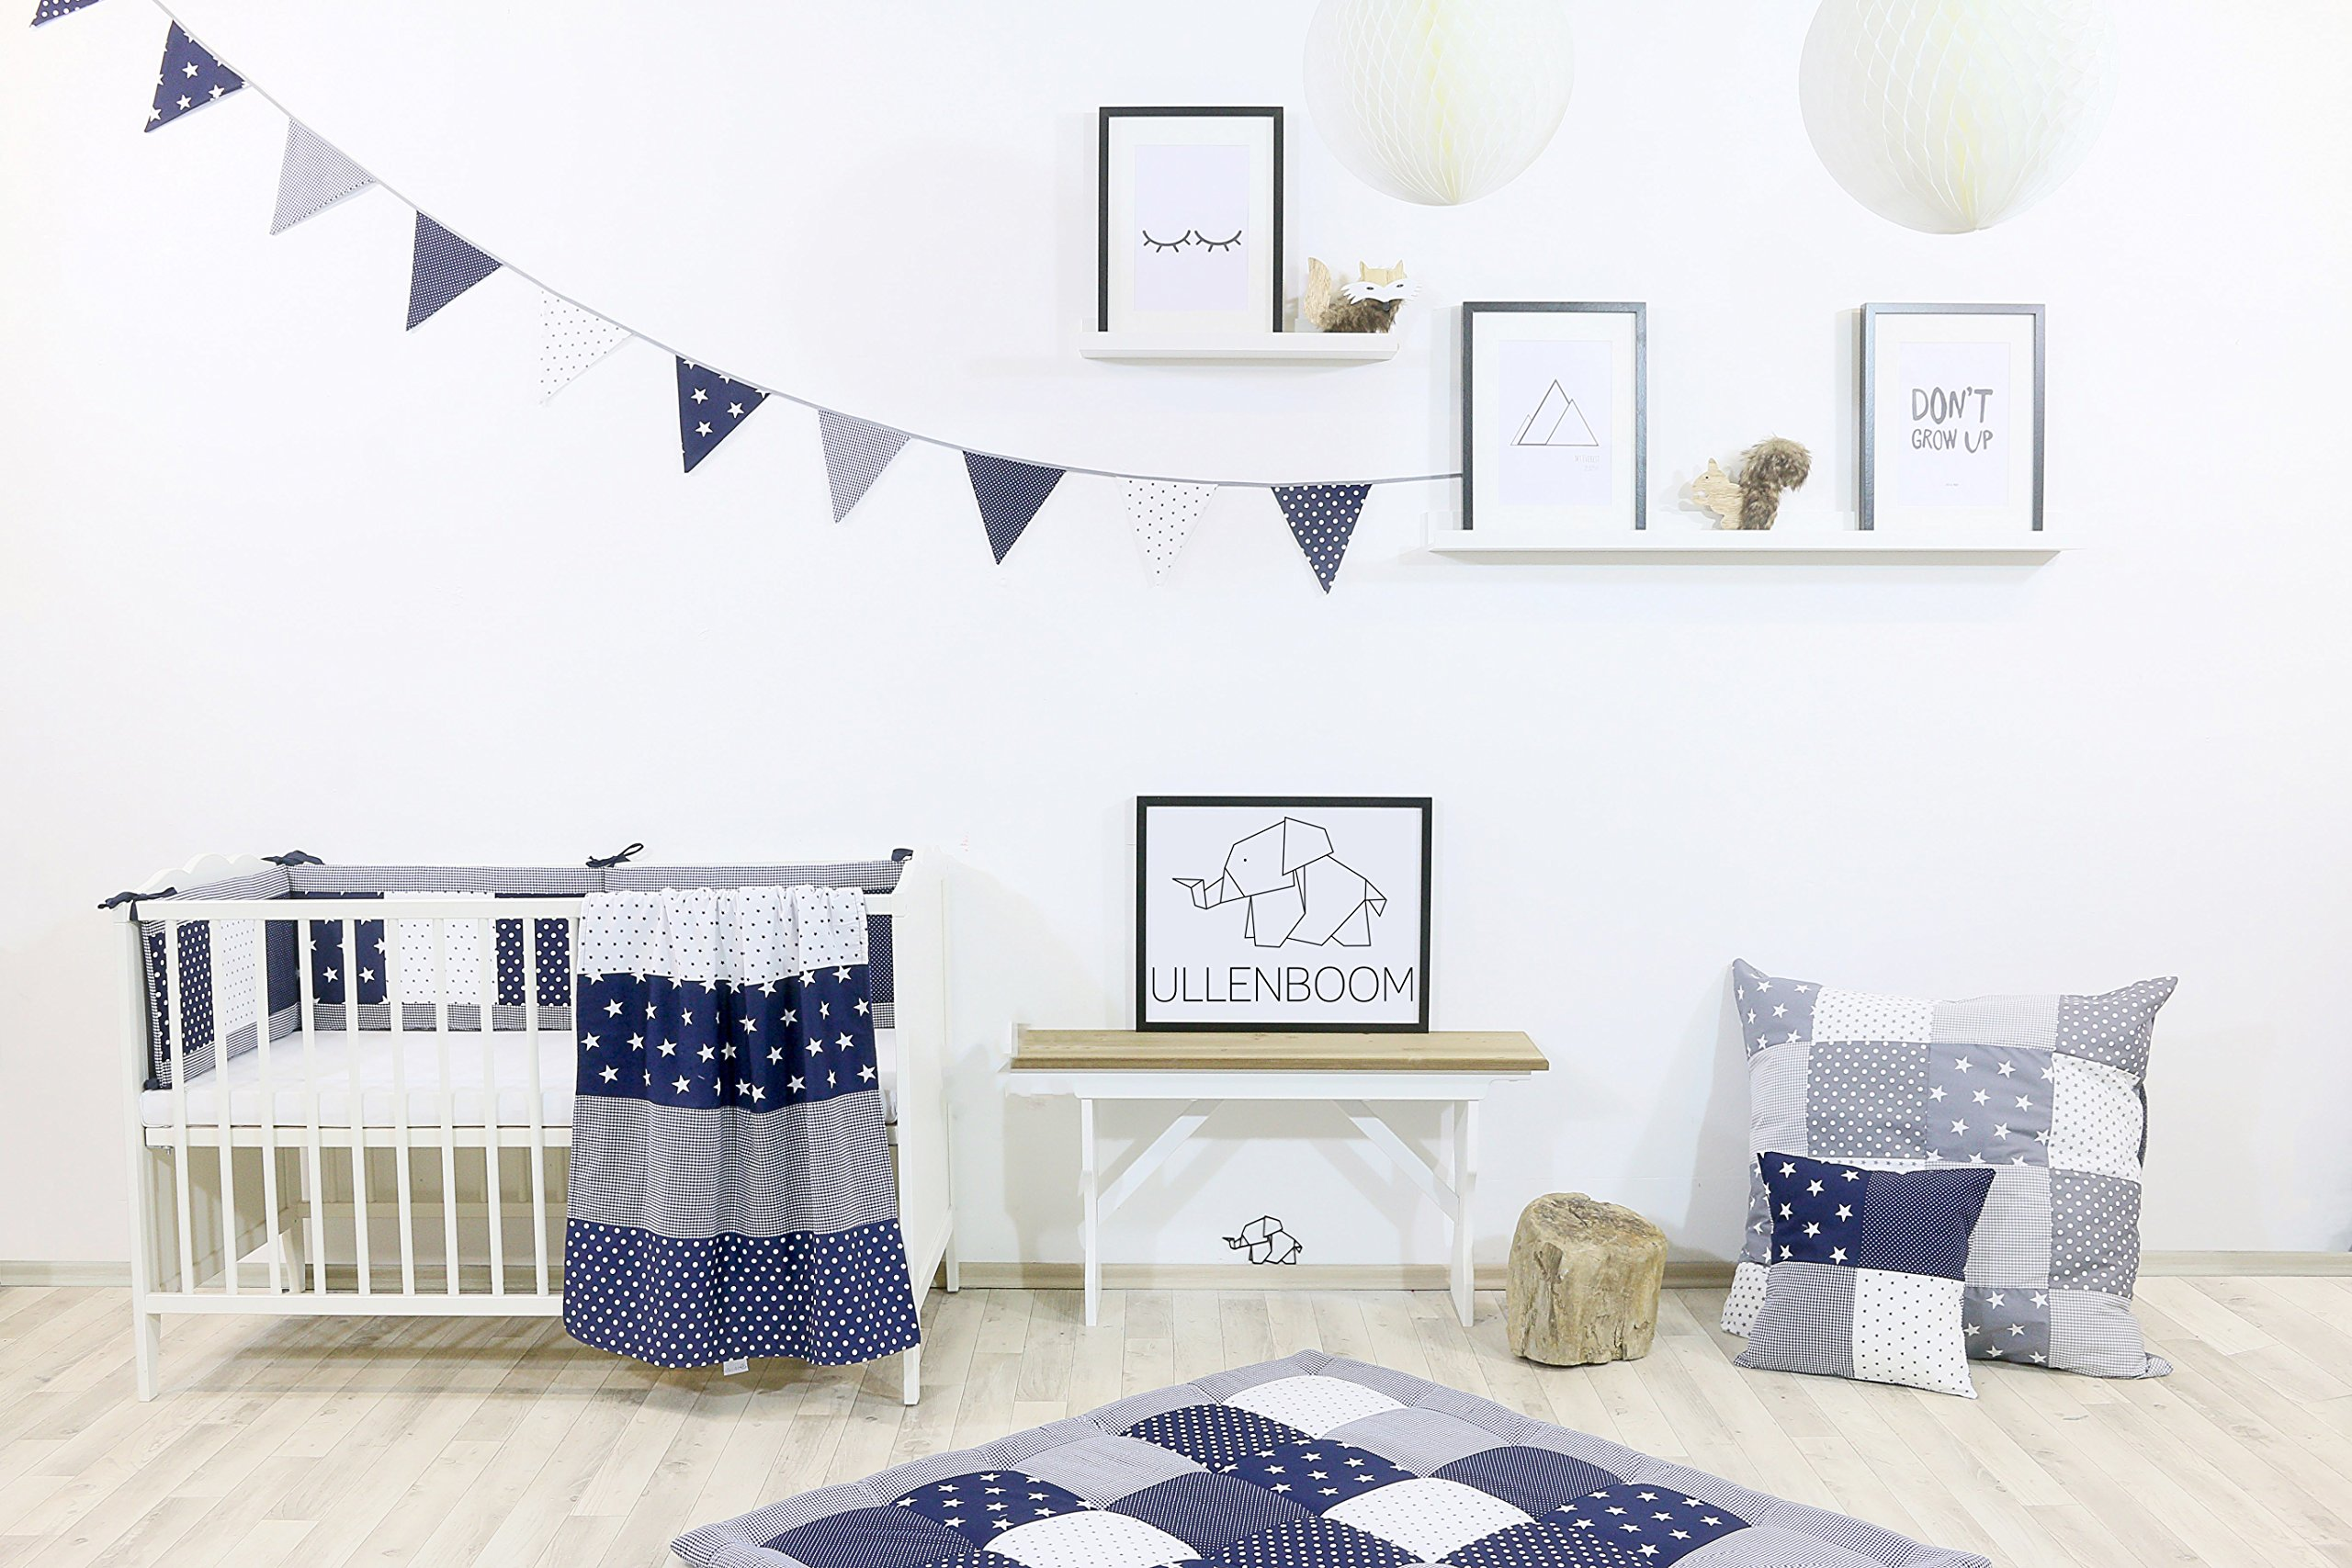 ULLENBOOM® Bumper- Blue Stars (200x 30cm Baby playpen Bumper, 100x 100cm playpen Bumper Pads for The Head Area) ULLENBOOM This 200x 30cm patchwork bumper serves as a protective insert and surround for 100x 100cm playpens, to provide babies with protection- especially head protection- from playpen bars The sizes 200x 30cm and 400x 30cm (full surround) are for playpens- the 'full surround' bumper comes in two sections. ULLENBOOM also offers additional sizes for 140x 70cm and 120x 60cm cots These bumpers can be washed at 30 °C and the materials used are certified according to the Oeko-Tex standard (tested for harmful substances, hypoallergenic); smooth outer fabric: 100% cotton (Oeko-Tex); soft, thick wadding: 100% polyester (Oeko-Tex) 3